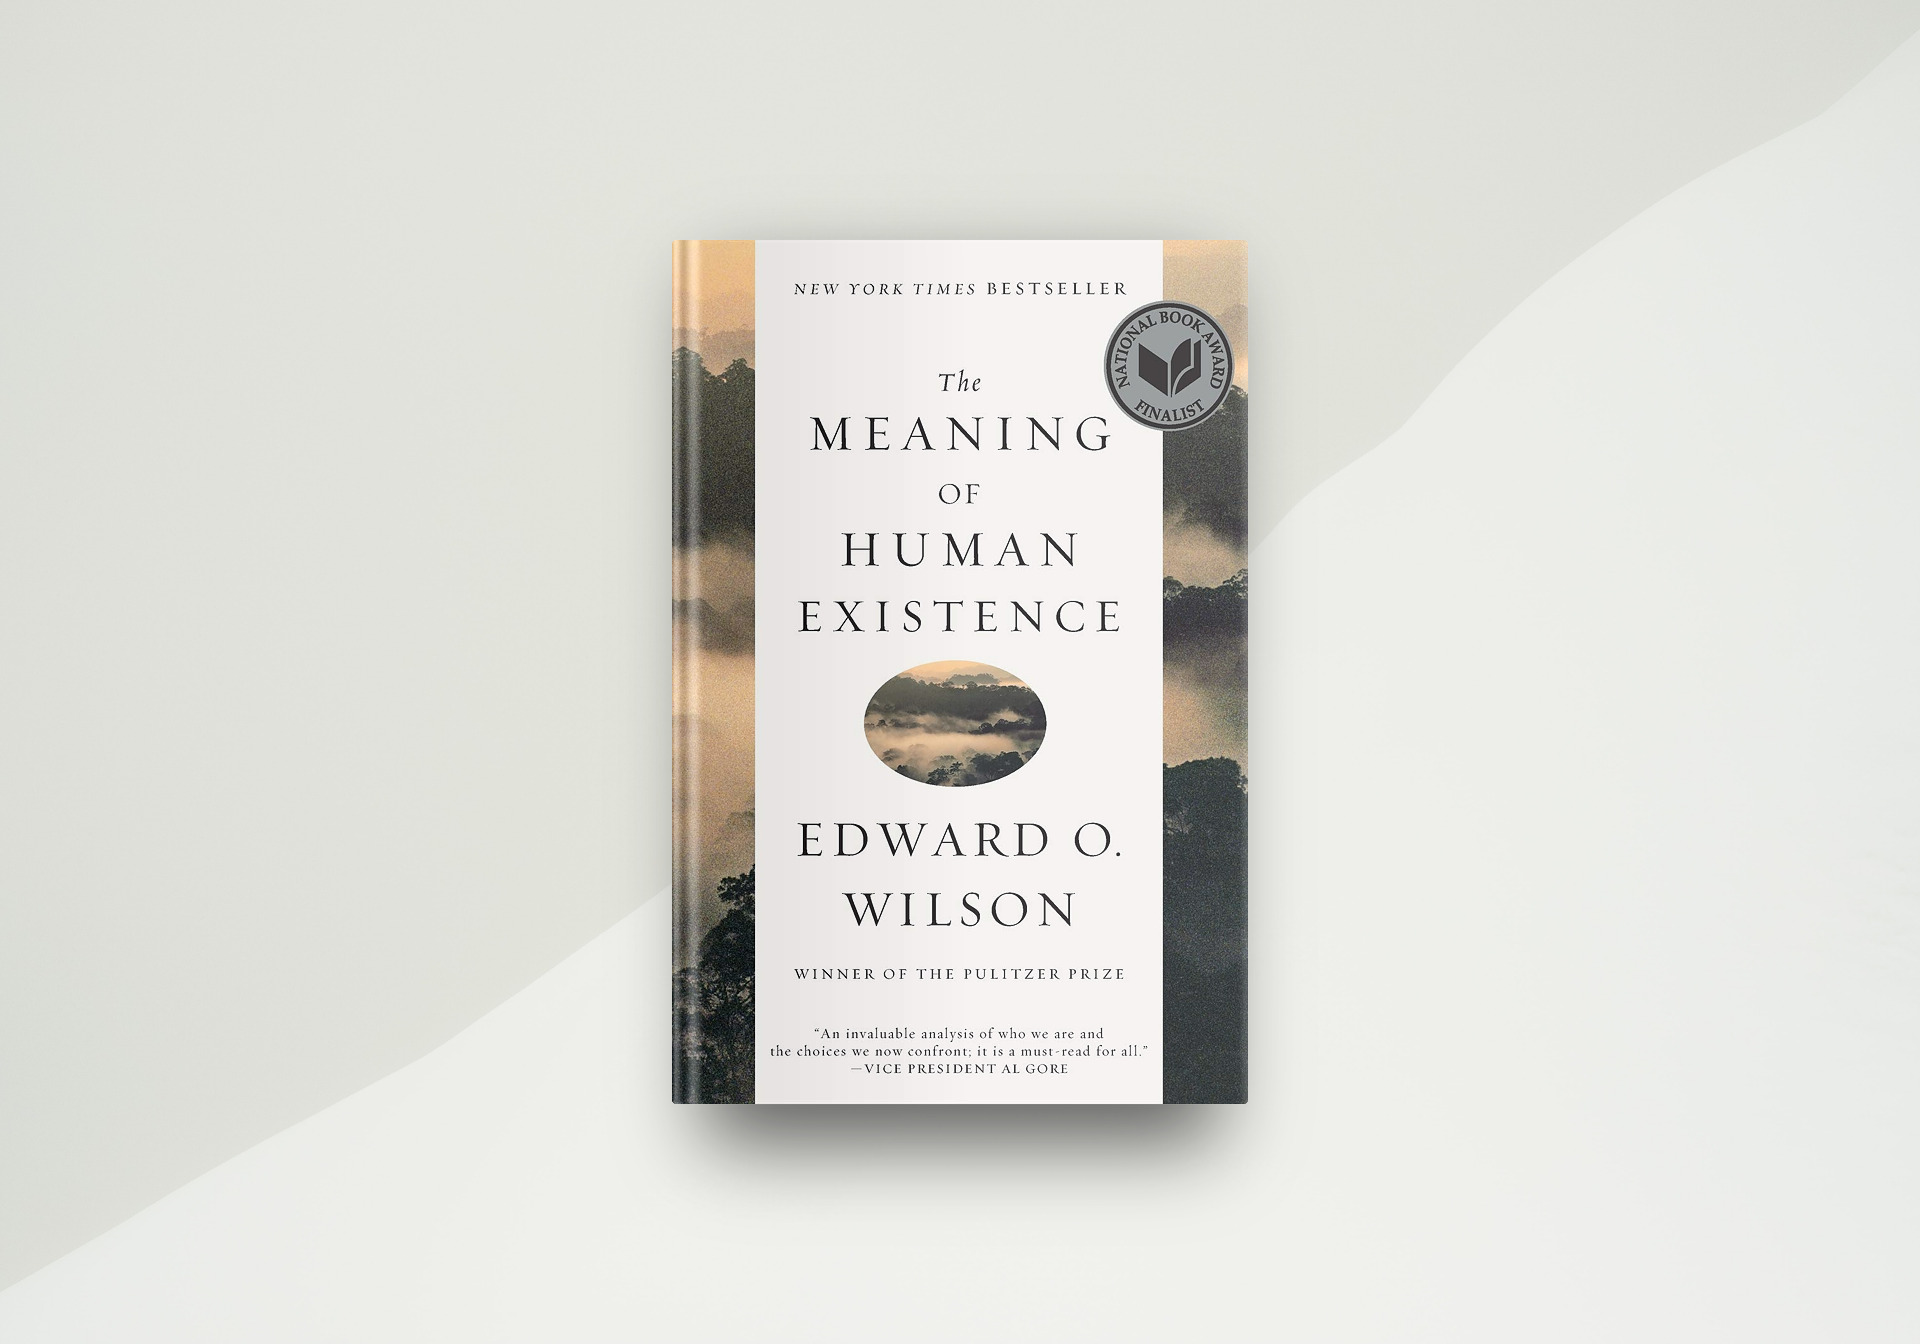 The Meaning Of Human Existence By Edward O. Wilson - Book Cover